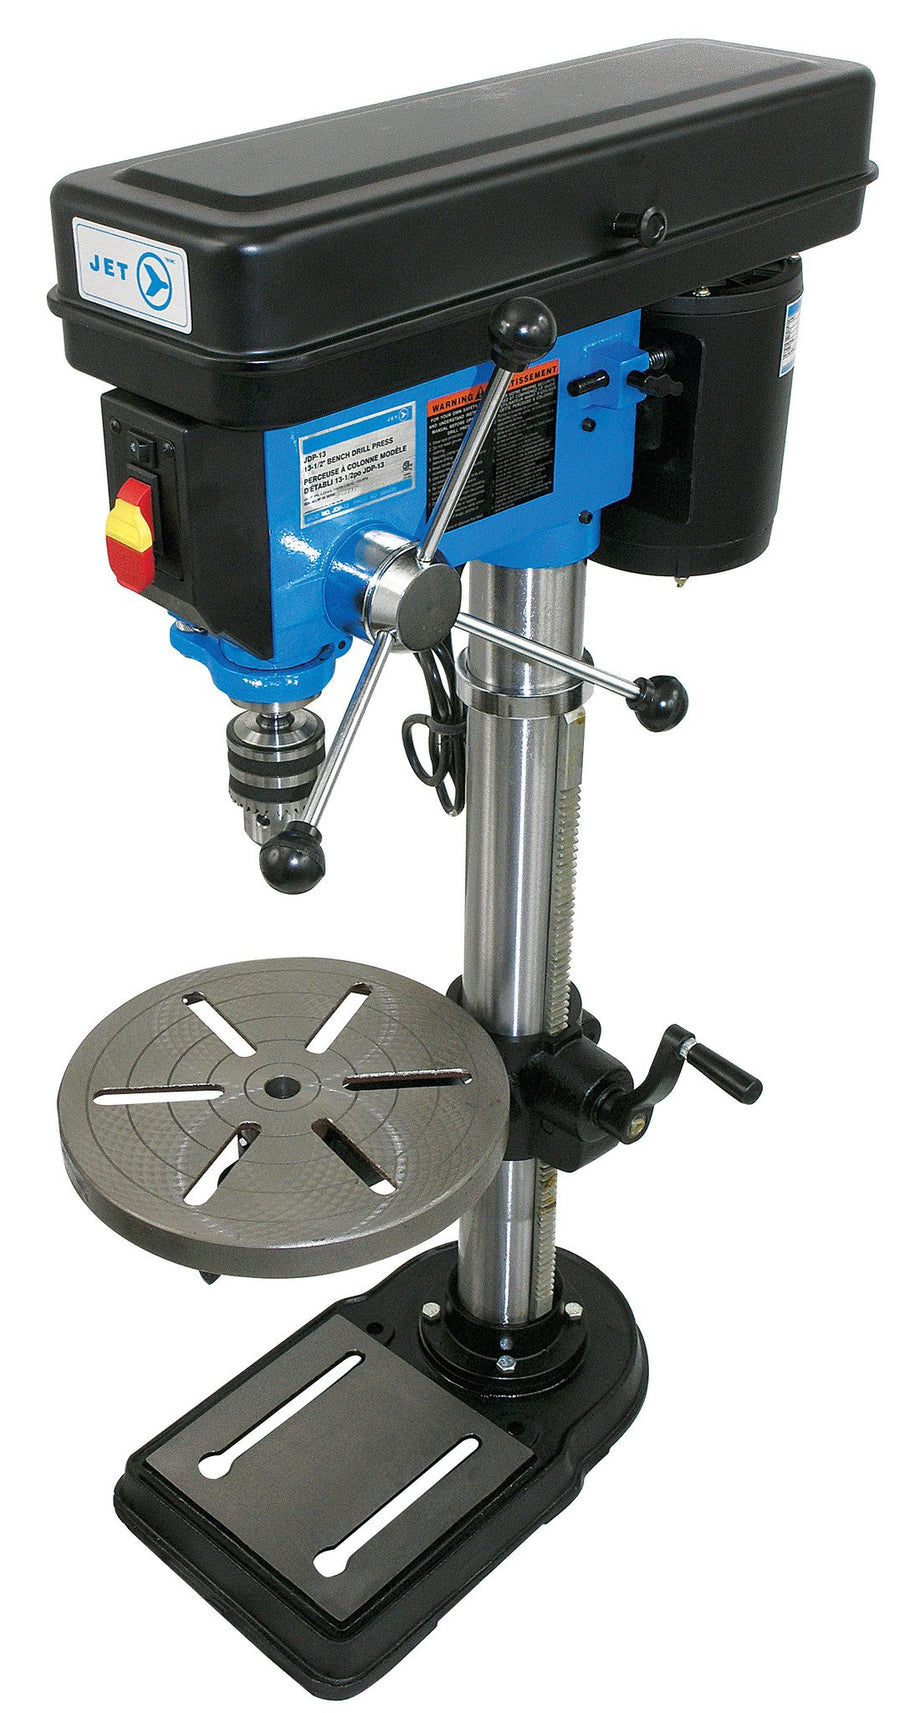 Jet Heavy Duty Bench Top Drill Press - 3/4 HP - 12 Speed